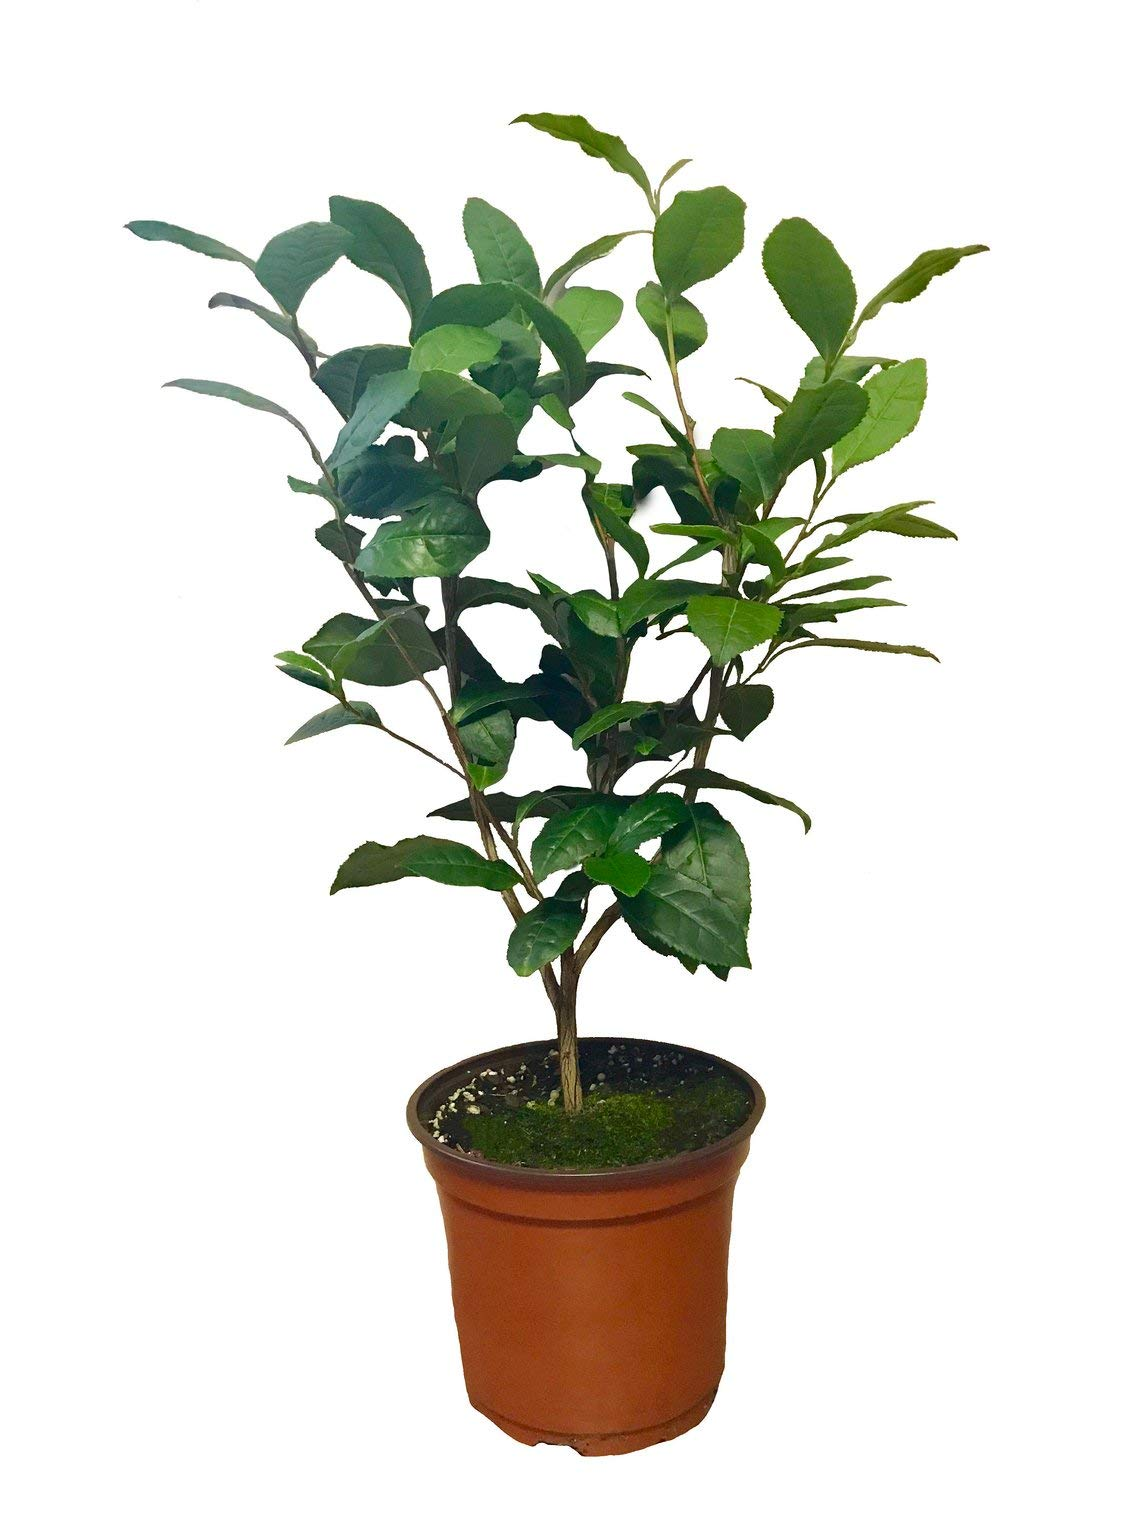 Camellia Sinensis - 1 Gallon Container - Large & Beautiful Live Tea Plant - Brew Your Own Black, White, Green & Oolong Tea